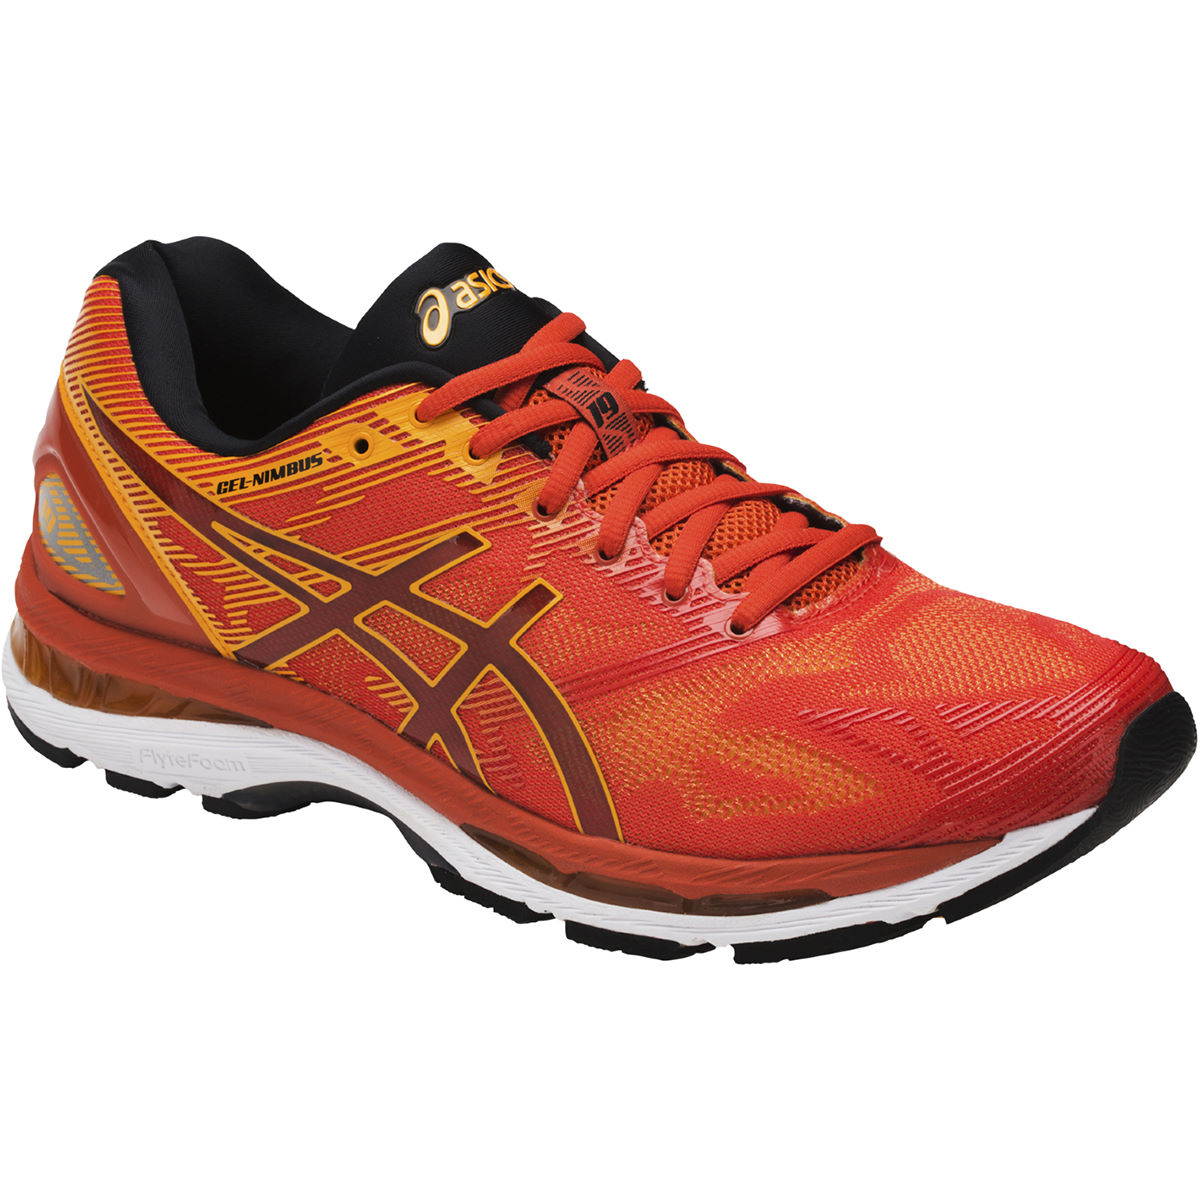 Chaussures Asics Gel-Nimbus 19 - UK 10 Red Clay/Gold Fusion Chaussures de running amorties